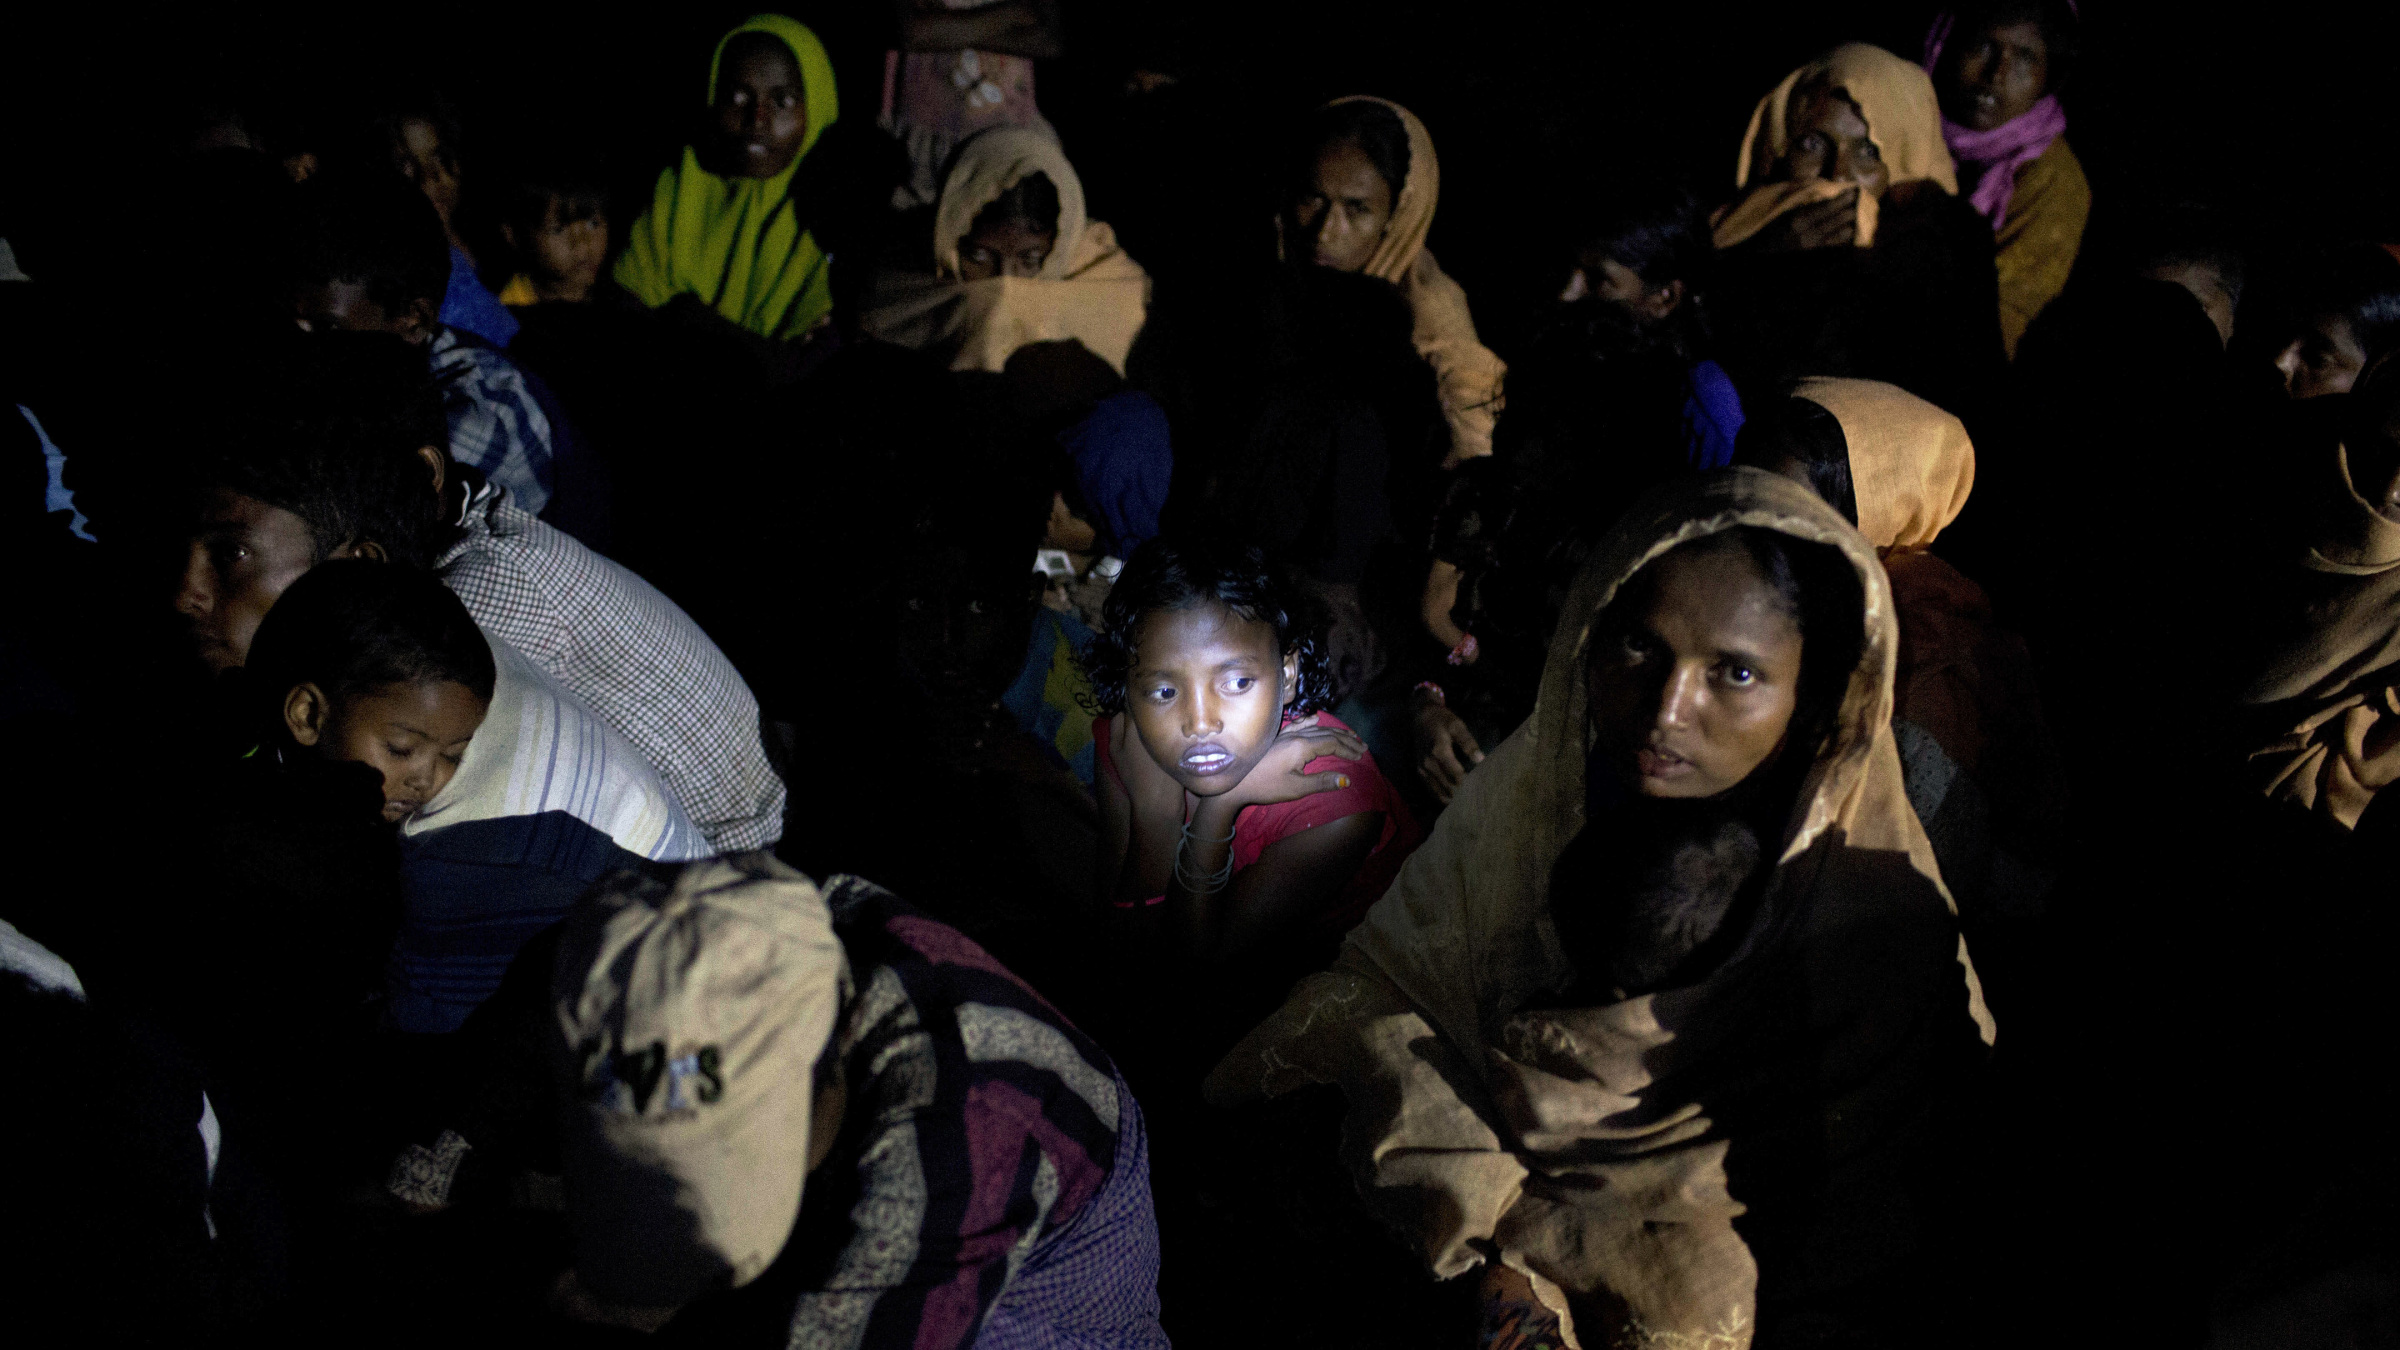 """Light from a torch falls on the face of a Rohingya Muslim girl sitting with a group on a raft made with plastic containers on which they crossed over from Myanmar into Bangladesh, as they wait for the permission to proceed forward, near Shah Porir Dwip, Bangladesh, Friday, Nov. 10, 2017. U.N. Secretary-General Antonio Guterres said Friday it is """"an absolutely essential priority"""" to stop all violence against Myanmar's Rohingya Muslims, allow them to return to their homes, and grant them legal status."""